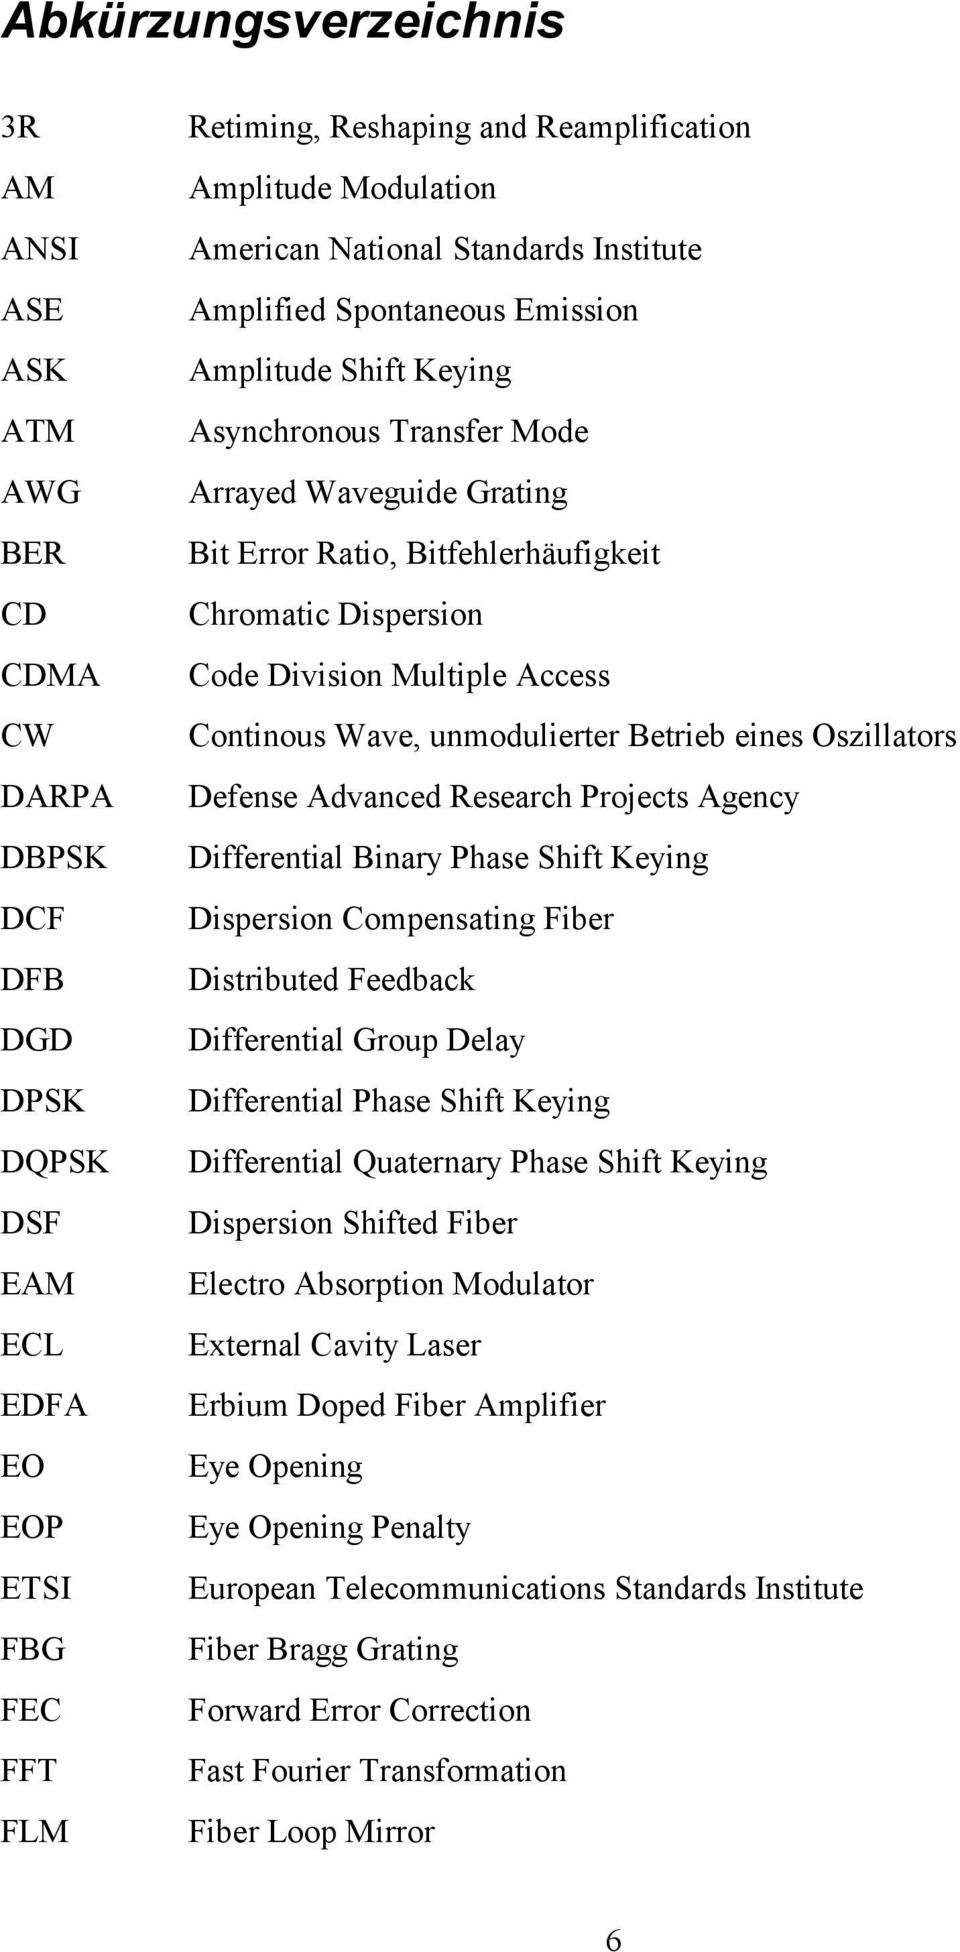 Chromatic Dispersion Code Division Multiple Access Continous Wave, unmodulierter Betrieb eines Oszillators Defense Advanced Research Projects Agency Differential Binary Phase Shift Keying Dispersion